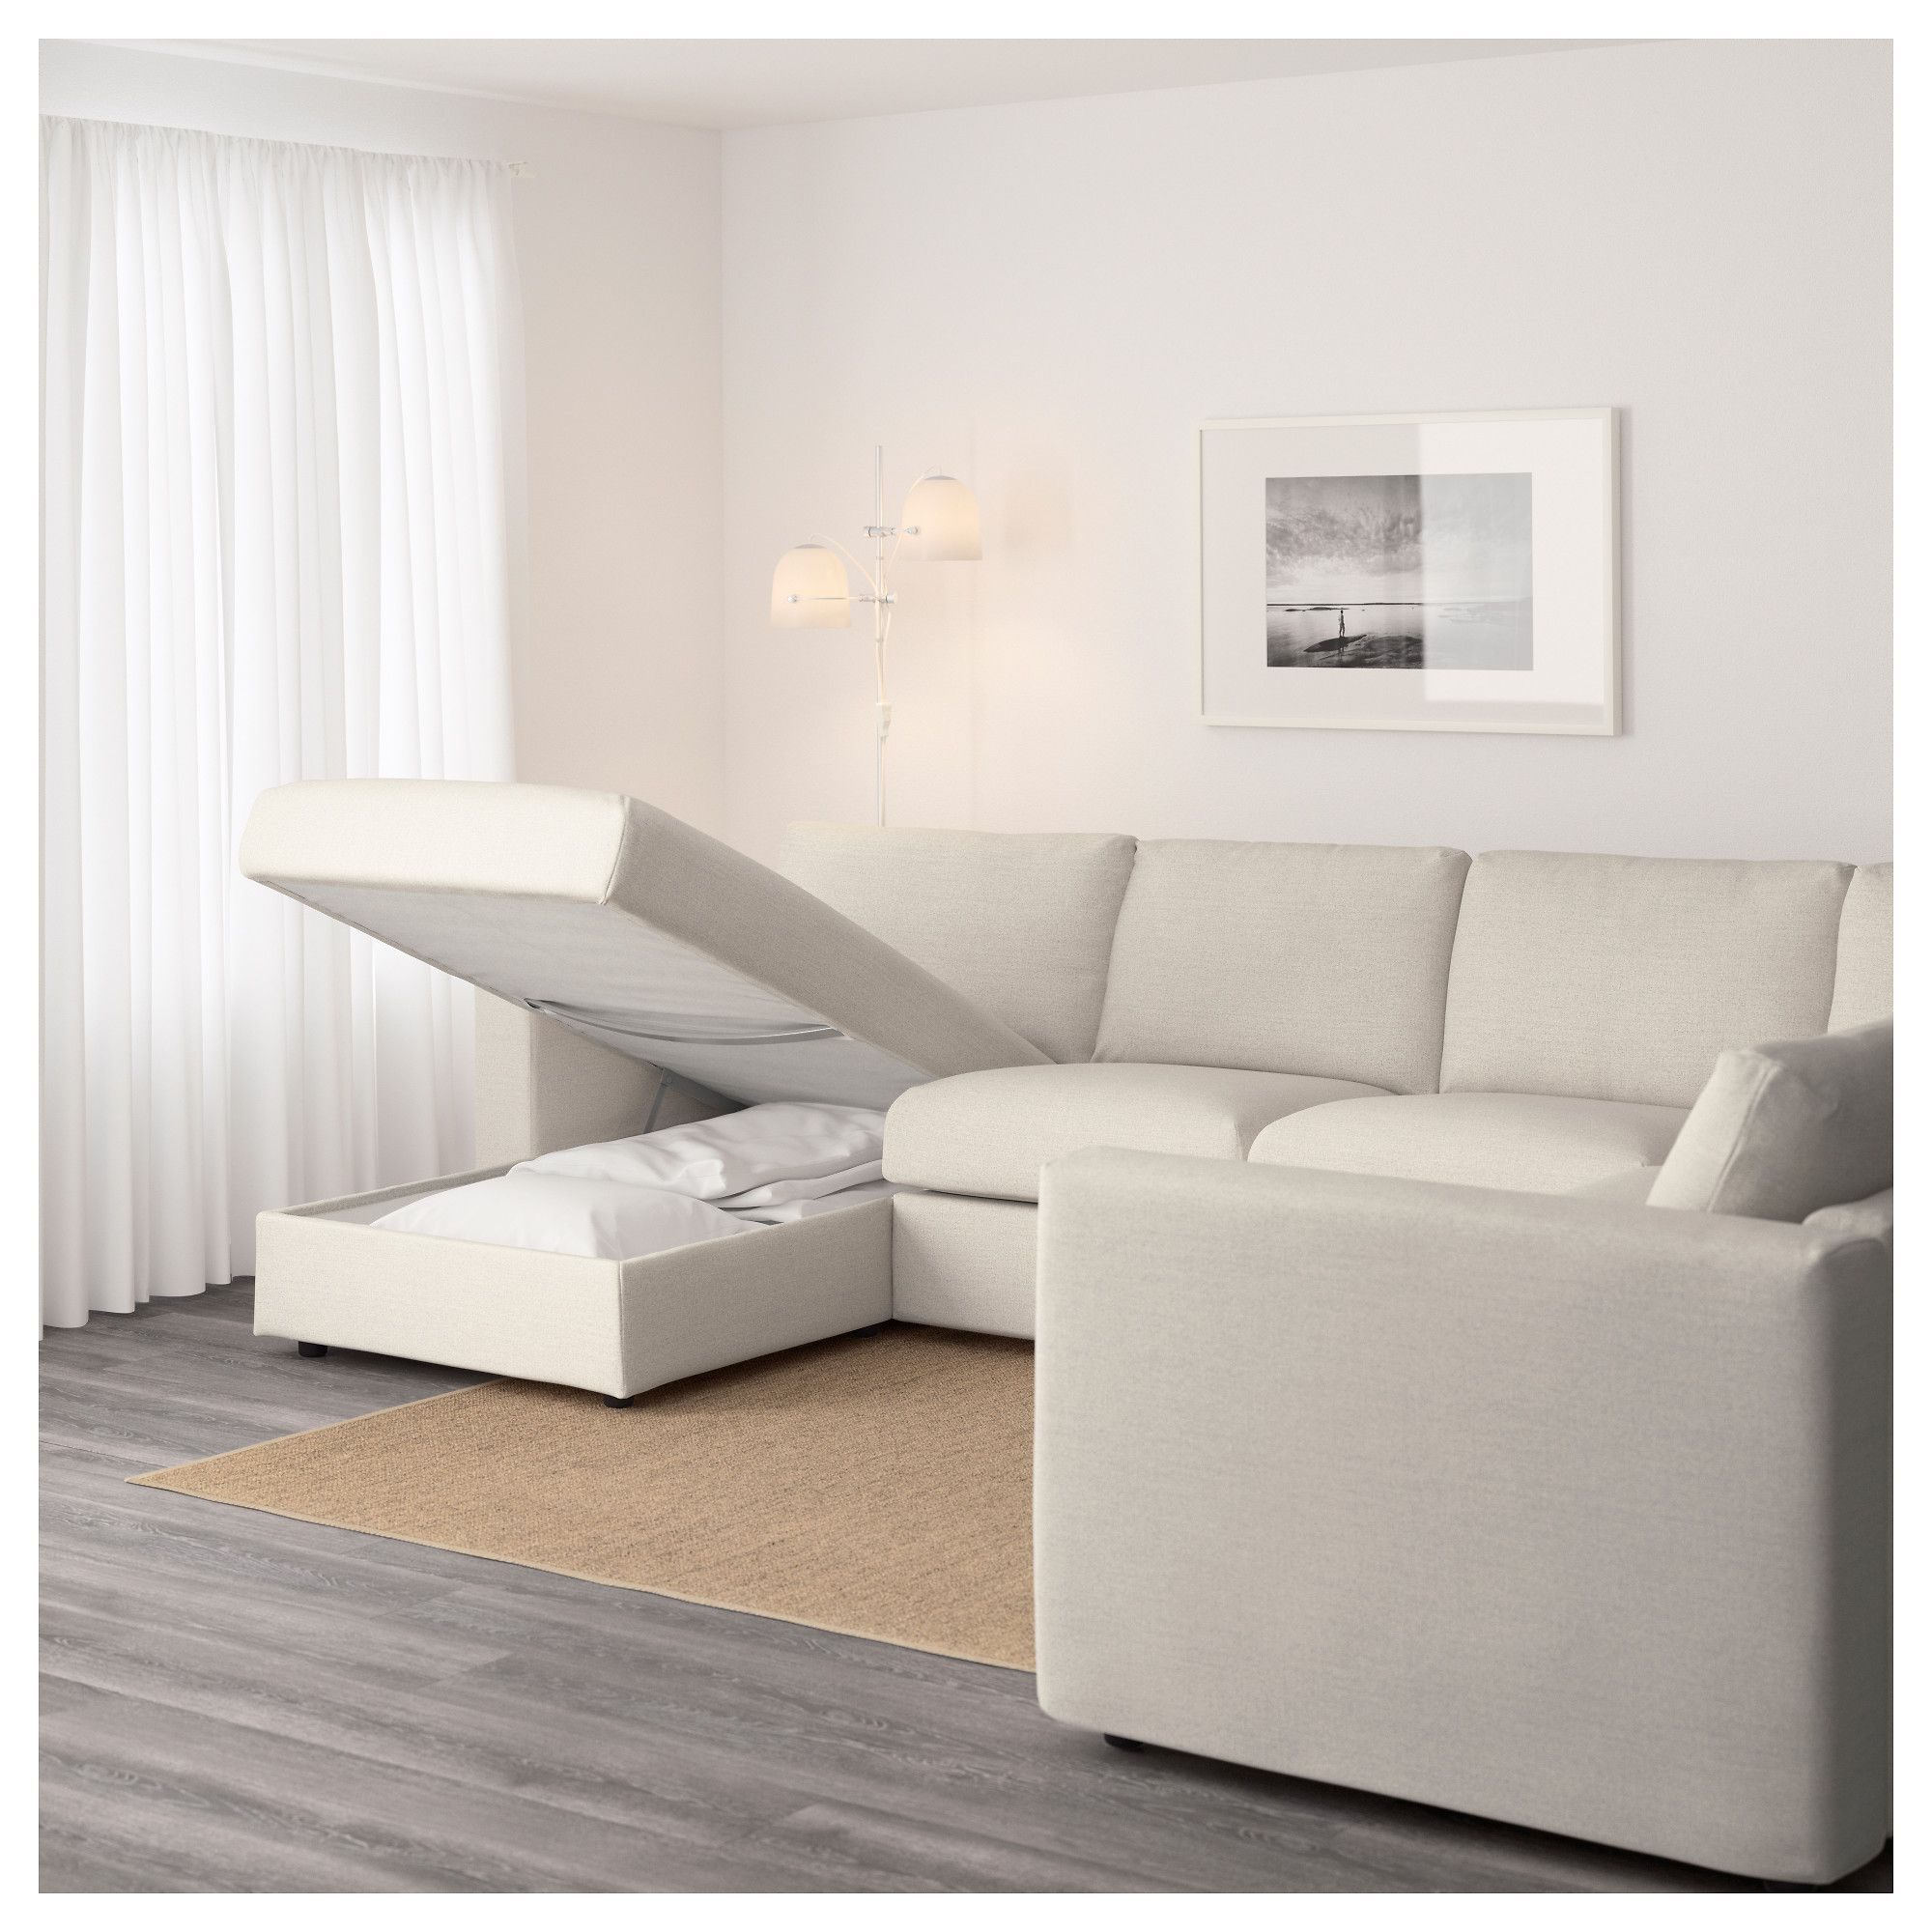 VIMLE Sectional, 5-seat Corner With Chaise